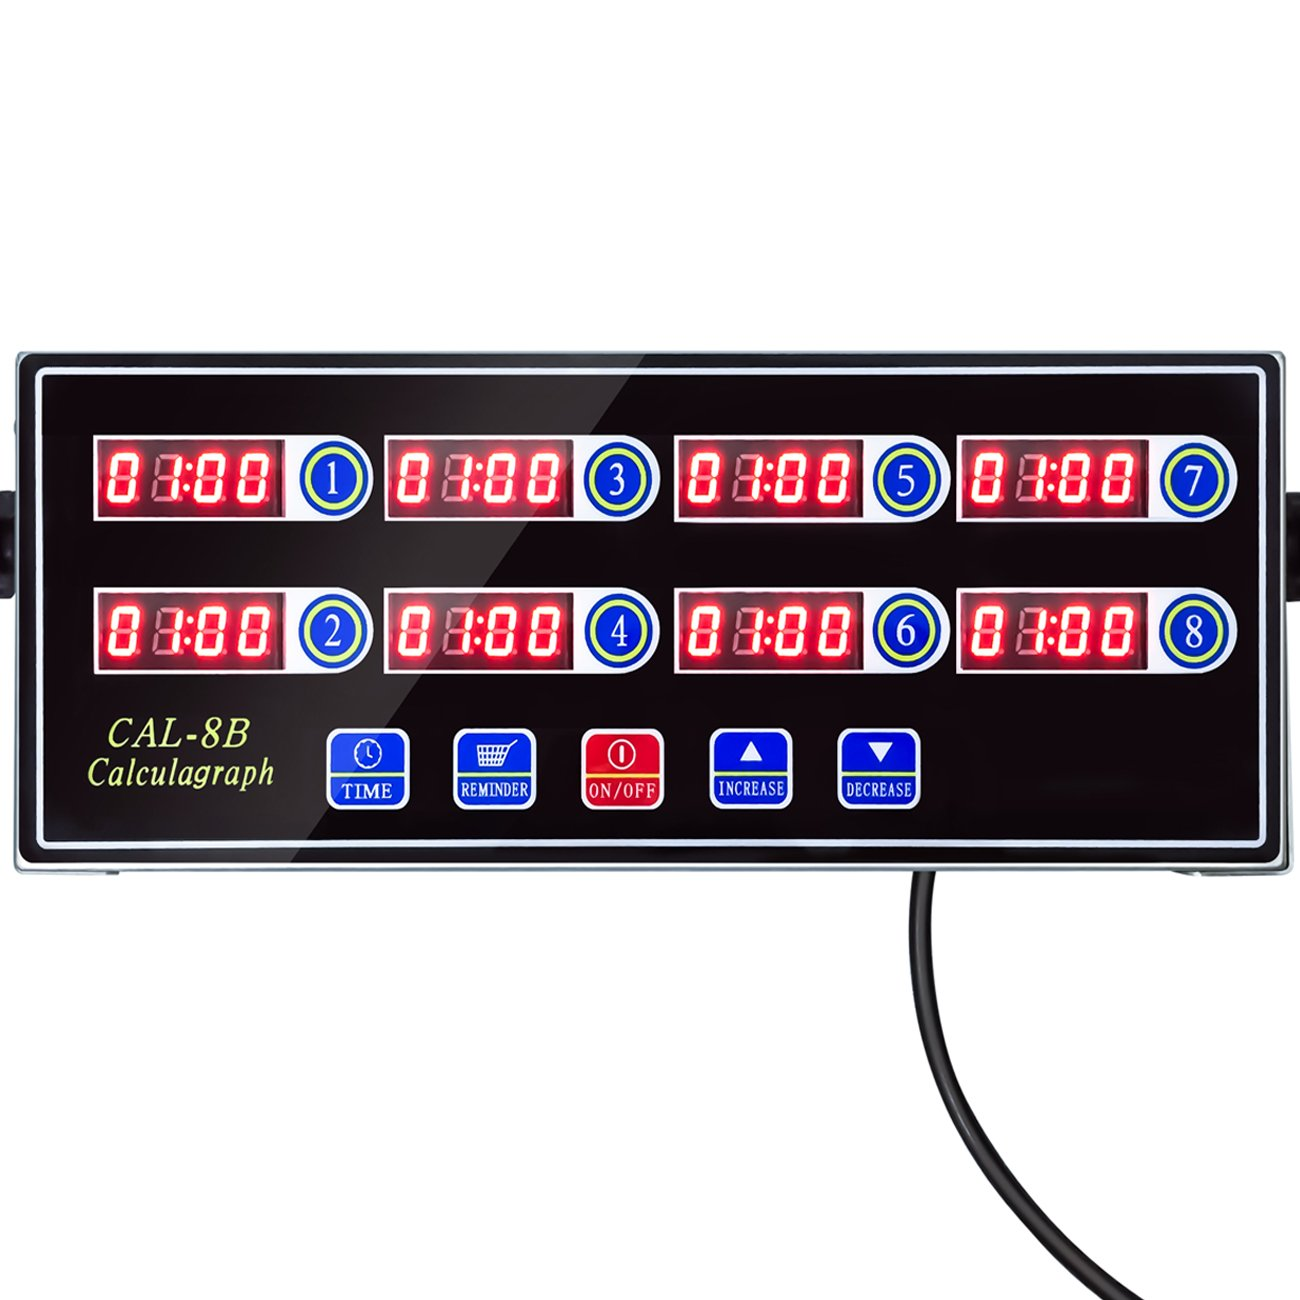 YOOYIST Home 8 Channels Digital Kitchen Timer Reminder Burger Cooking Timming Loud Alarm Stainless Steel LED Display For Commercial Restaurant